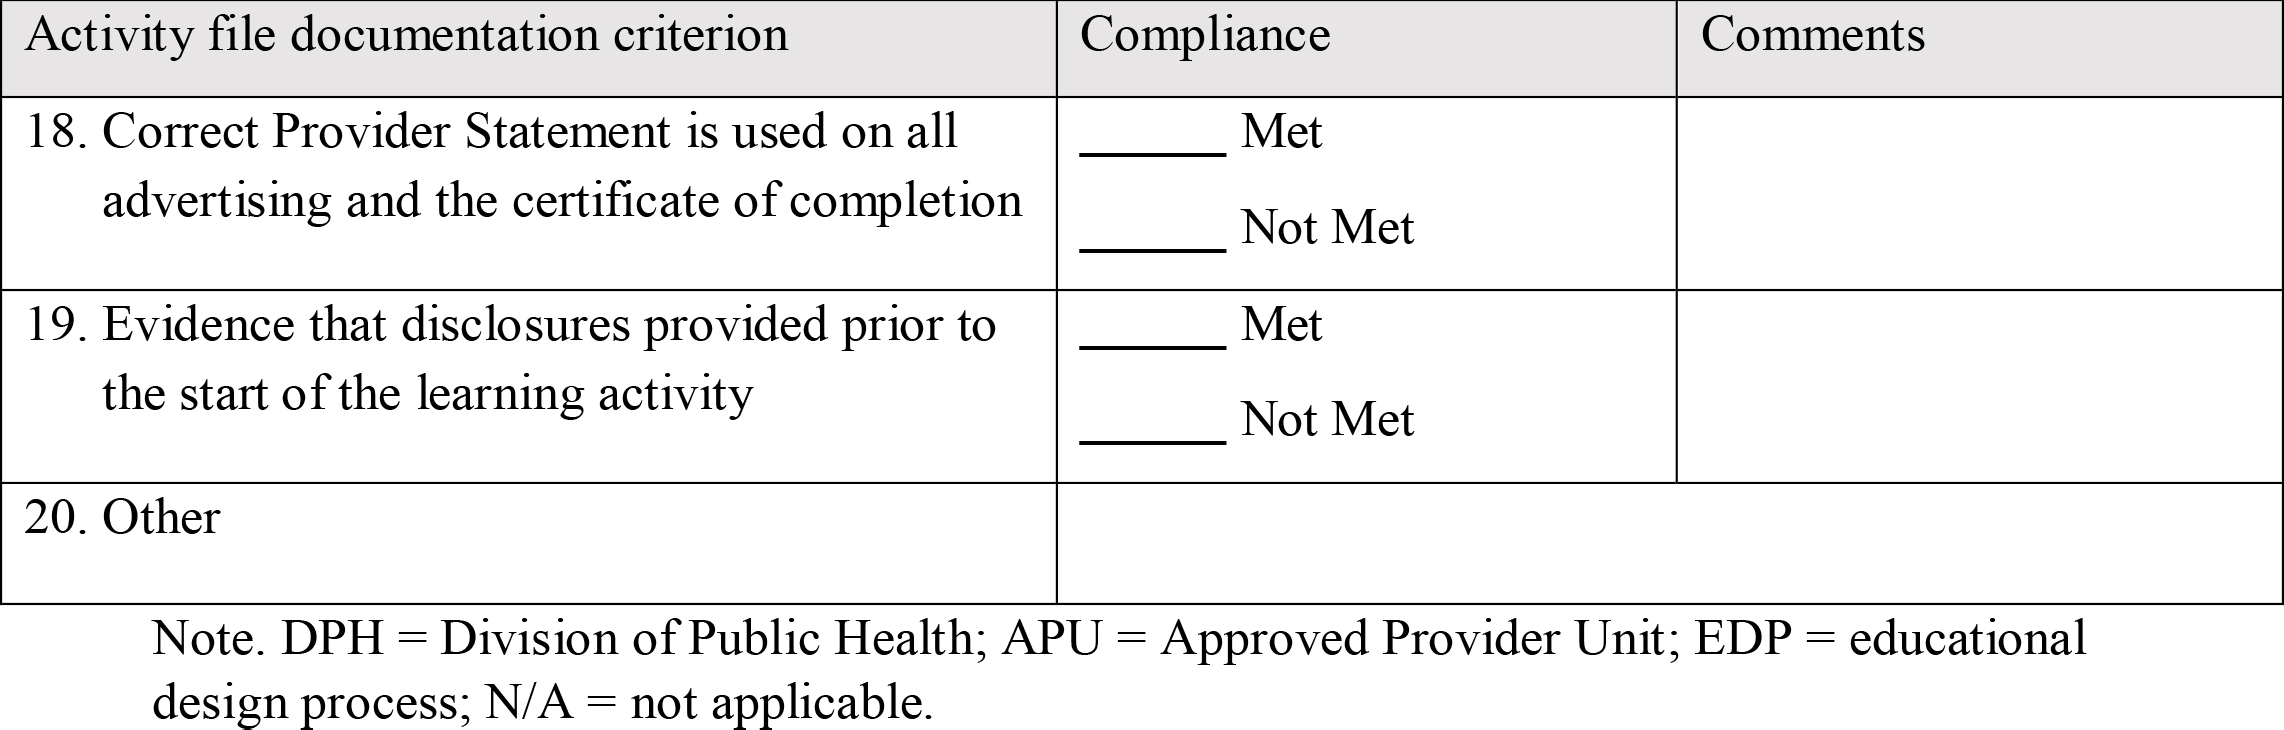 Audit for Success, Competence, & ConfidenceNorth Carolina DPH APU Activity Audit Form 2015 Criteria